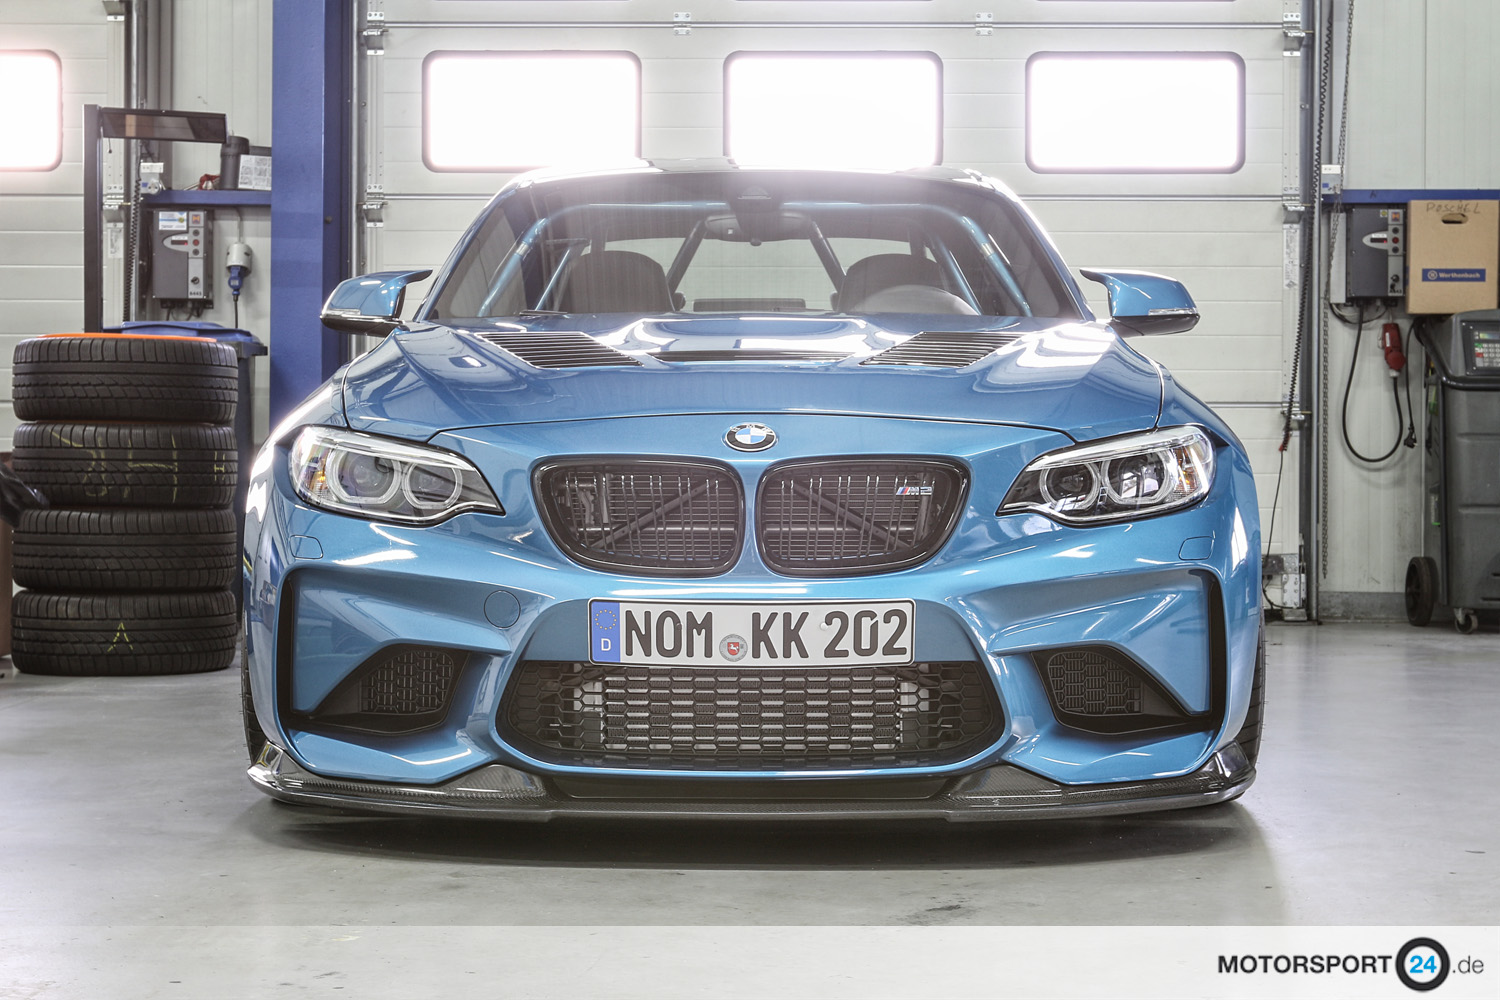 bmw 5x with M235i F22 Chassis on Bimmerfix besides VW 5x100 Wheel Adapters together with Dassault Falcon 2000s Business Jet By Bmw Group Designworksusa 36168 likewise Engate De Reboque K1 Toro   Esfera Aco Carbono Preto Unico 000000715 likewise Falcon 7X.